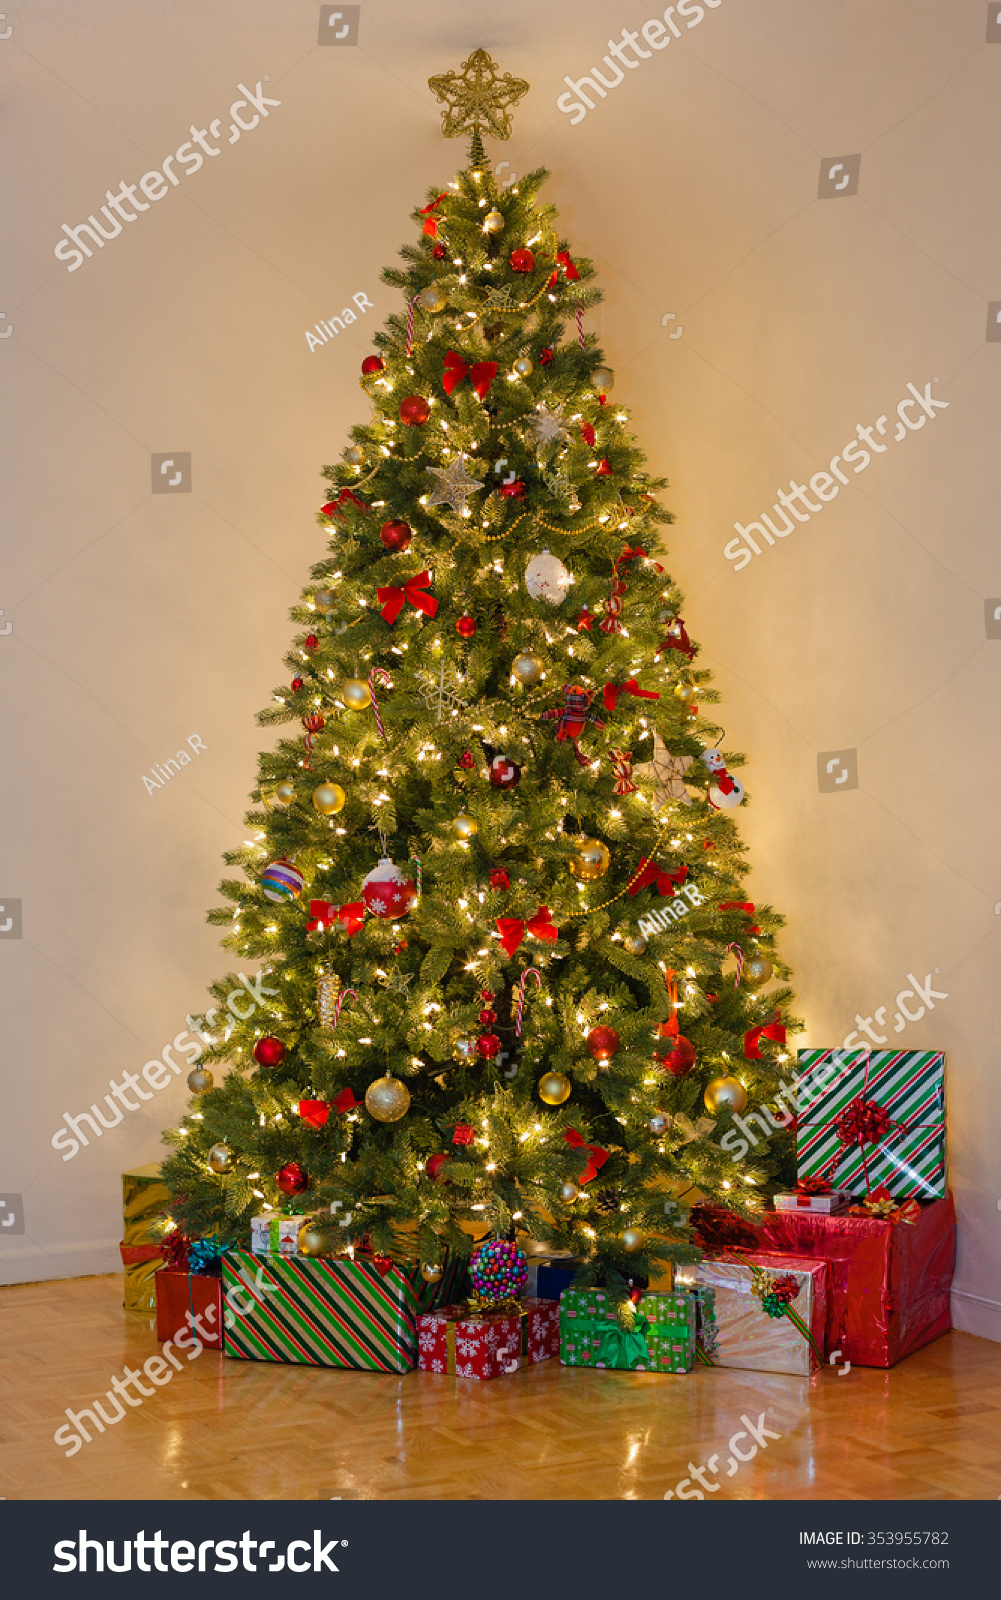 Decorated pine tree many presents under stock photo for Red and yellow christmas tree